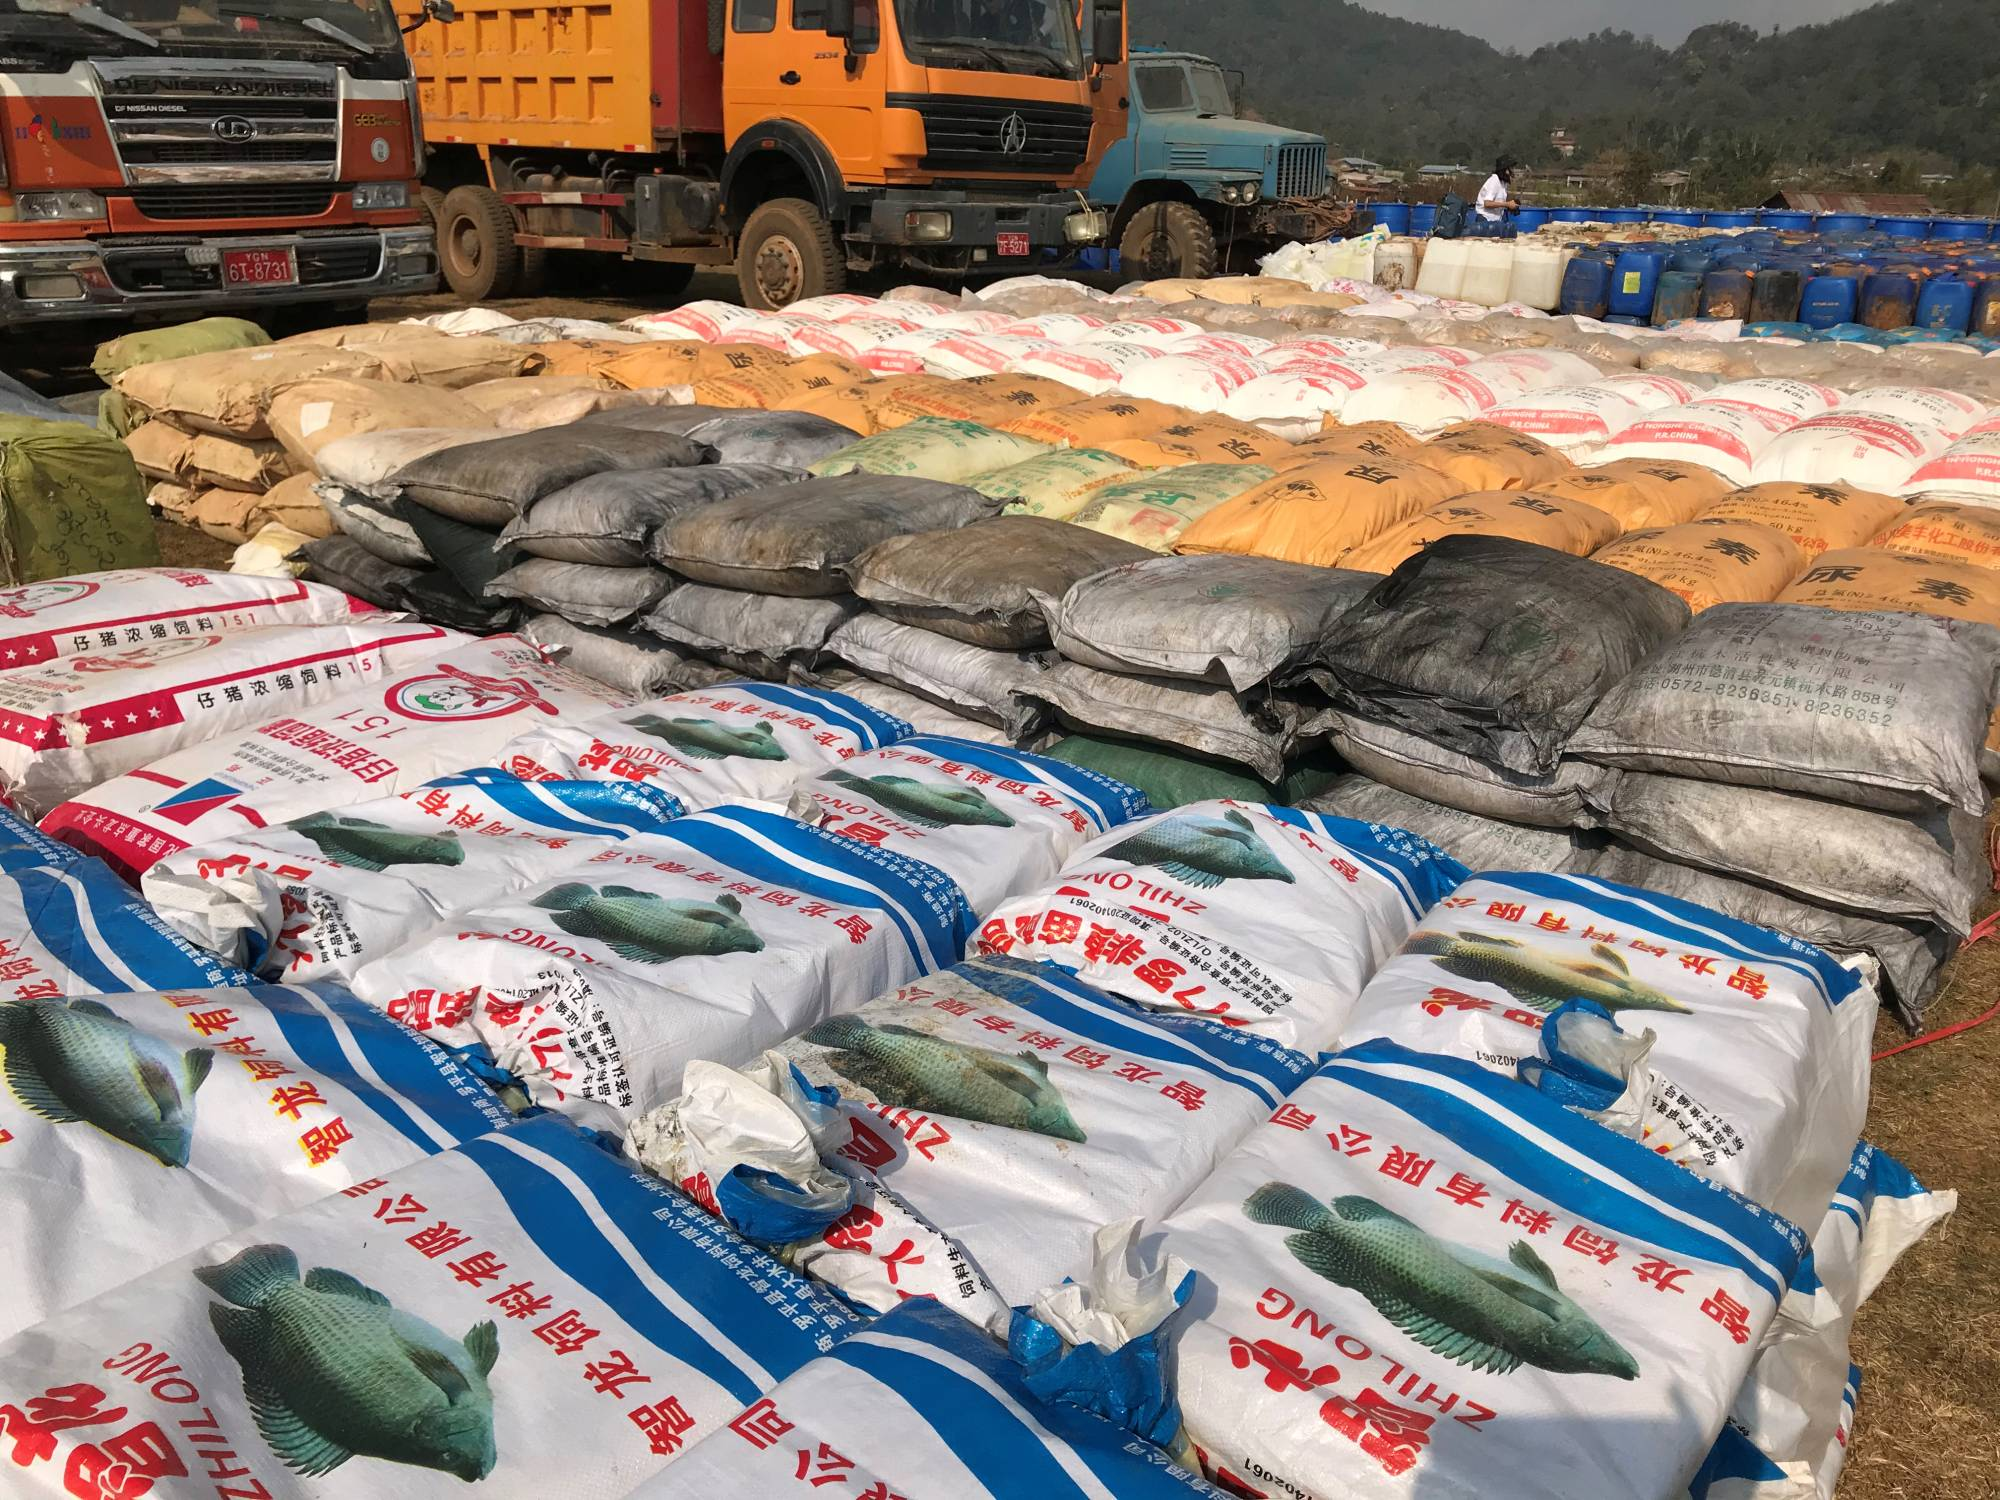 Precursor chemicals used to make illicit drugs such as methamphetamine, ketamine, heroin and fentanyl seized by Myanmar police and military are seen in this undated photo near Loikan village in Shan State between February and April 2020 in what the United Nations Office on Drugs and Crime described as Asia's biggest-ever drug bust.  | MYANMAR POLICE / UNODC / VIA REUTERS